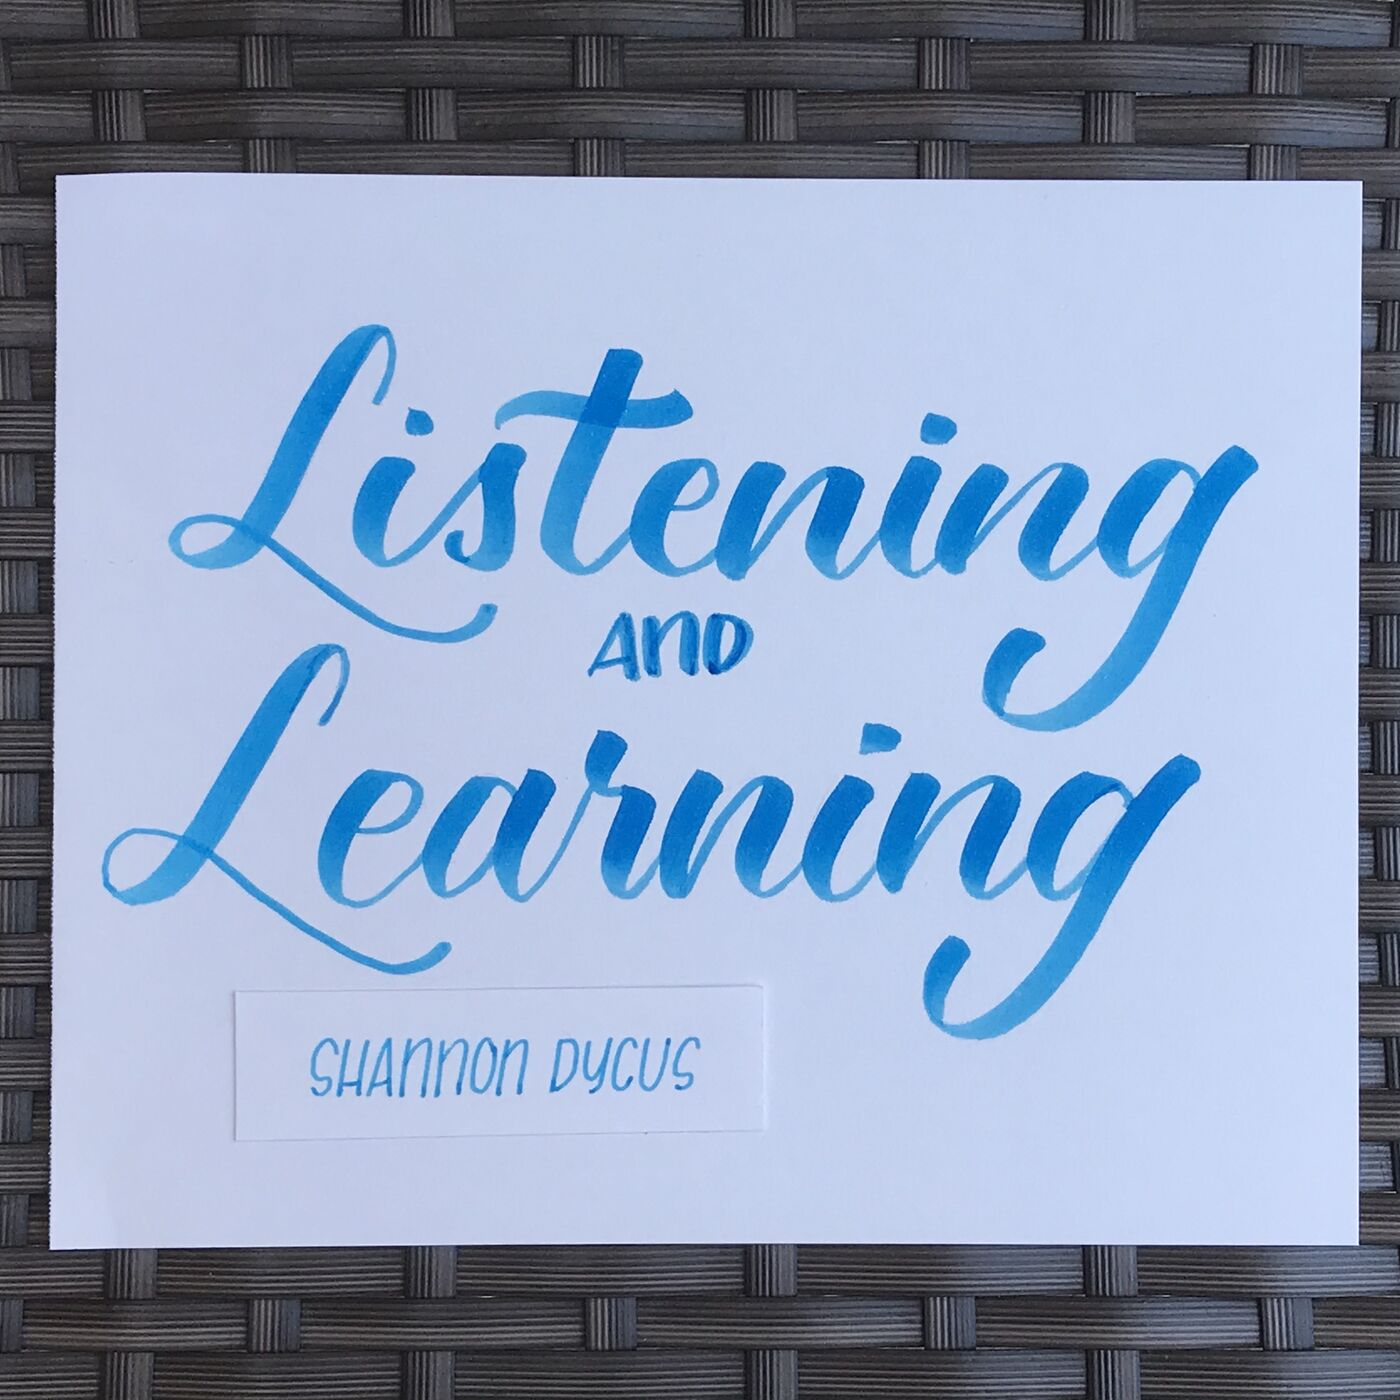 Listening & Learning: Shannon Dycus